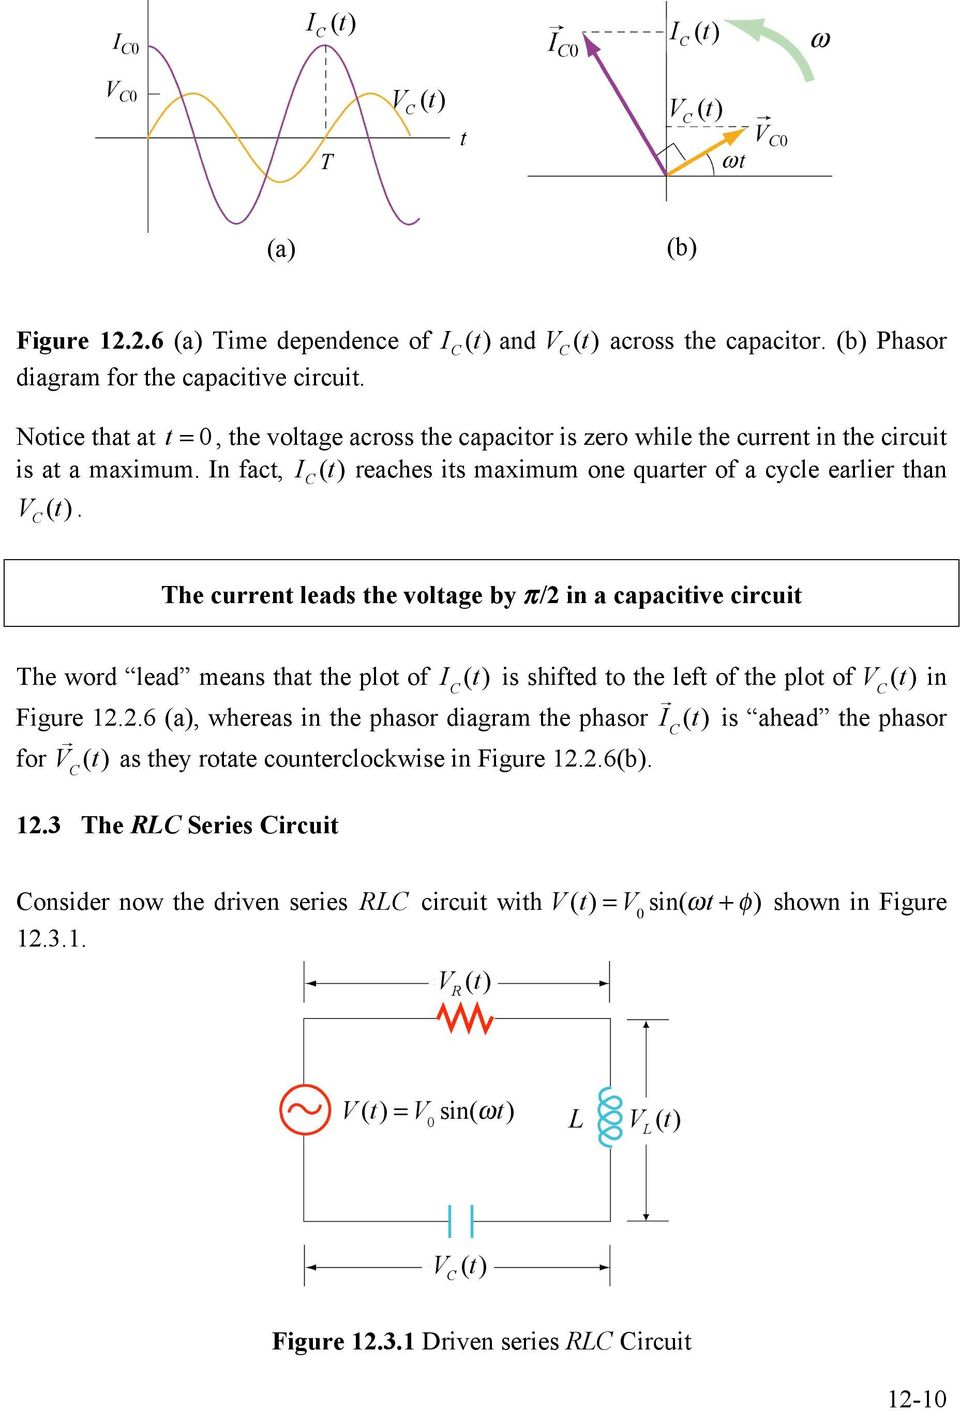 Chapter 12 Driven Rlc Circuits Pdf Ac Circuit Inductance And Capacitance Lcr In Series Fact I T Reaches Its Maximum One Quarter Of A Cycle Earlier